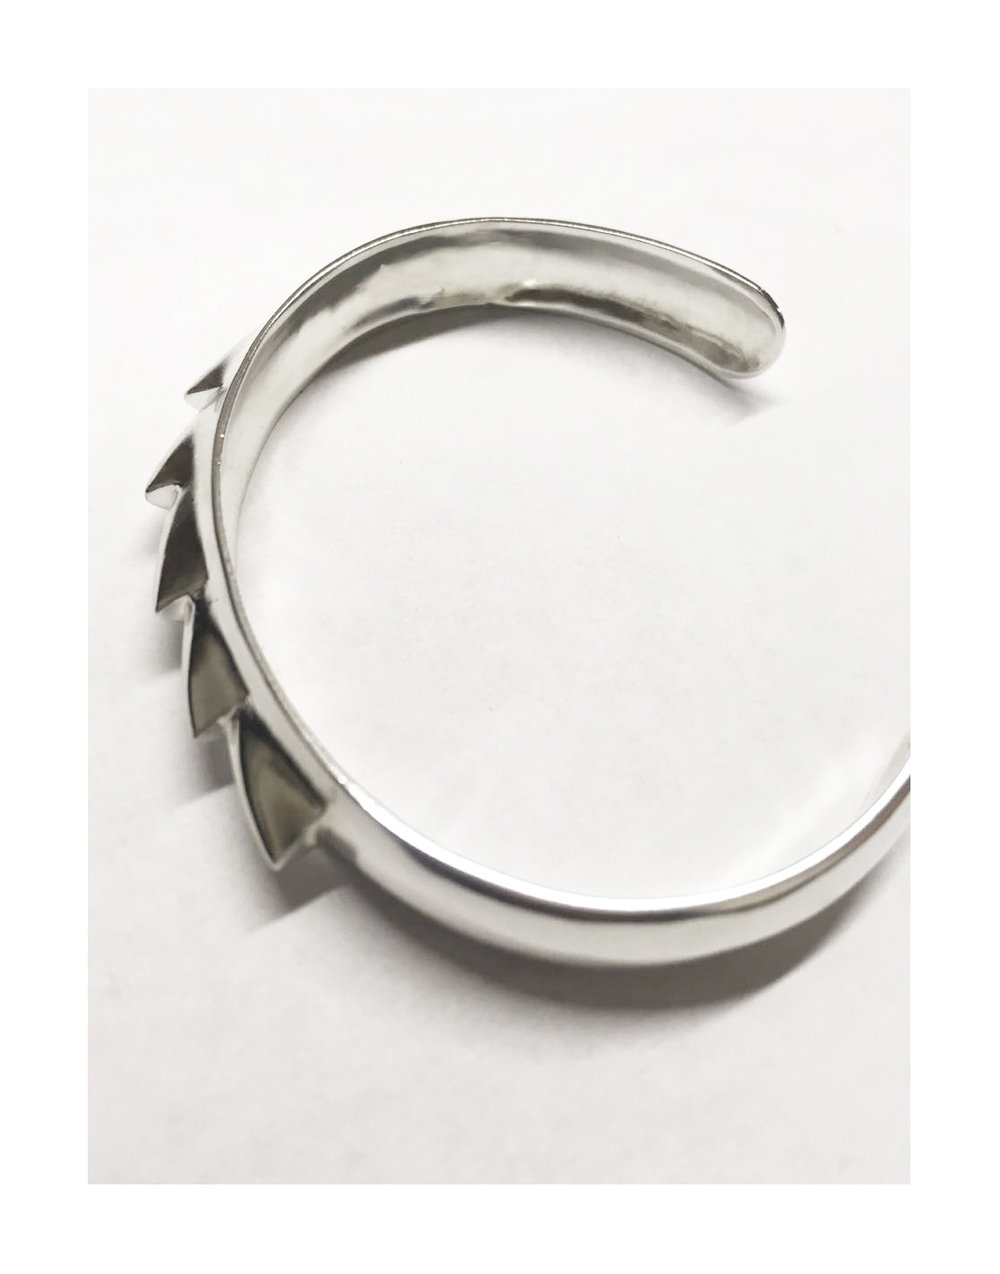 Ness bracelet  Recalling the pointed look of the saw/disc, the bracelet adorns itself with a sharp teeth that smoothly blend out of a central curvature. Ideal for those times when the mere suggestion of aggressiveness is deterrent enough.